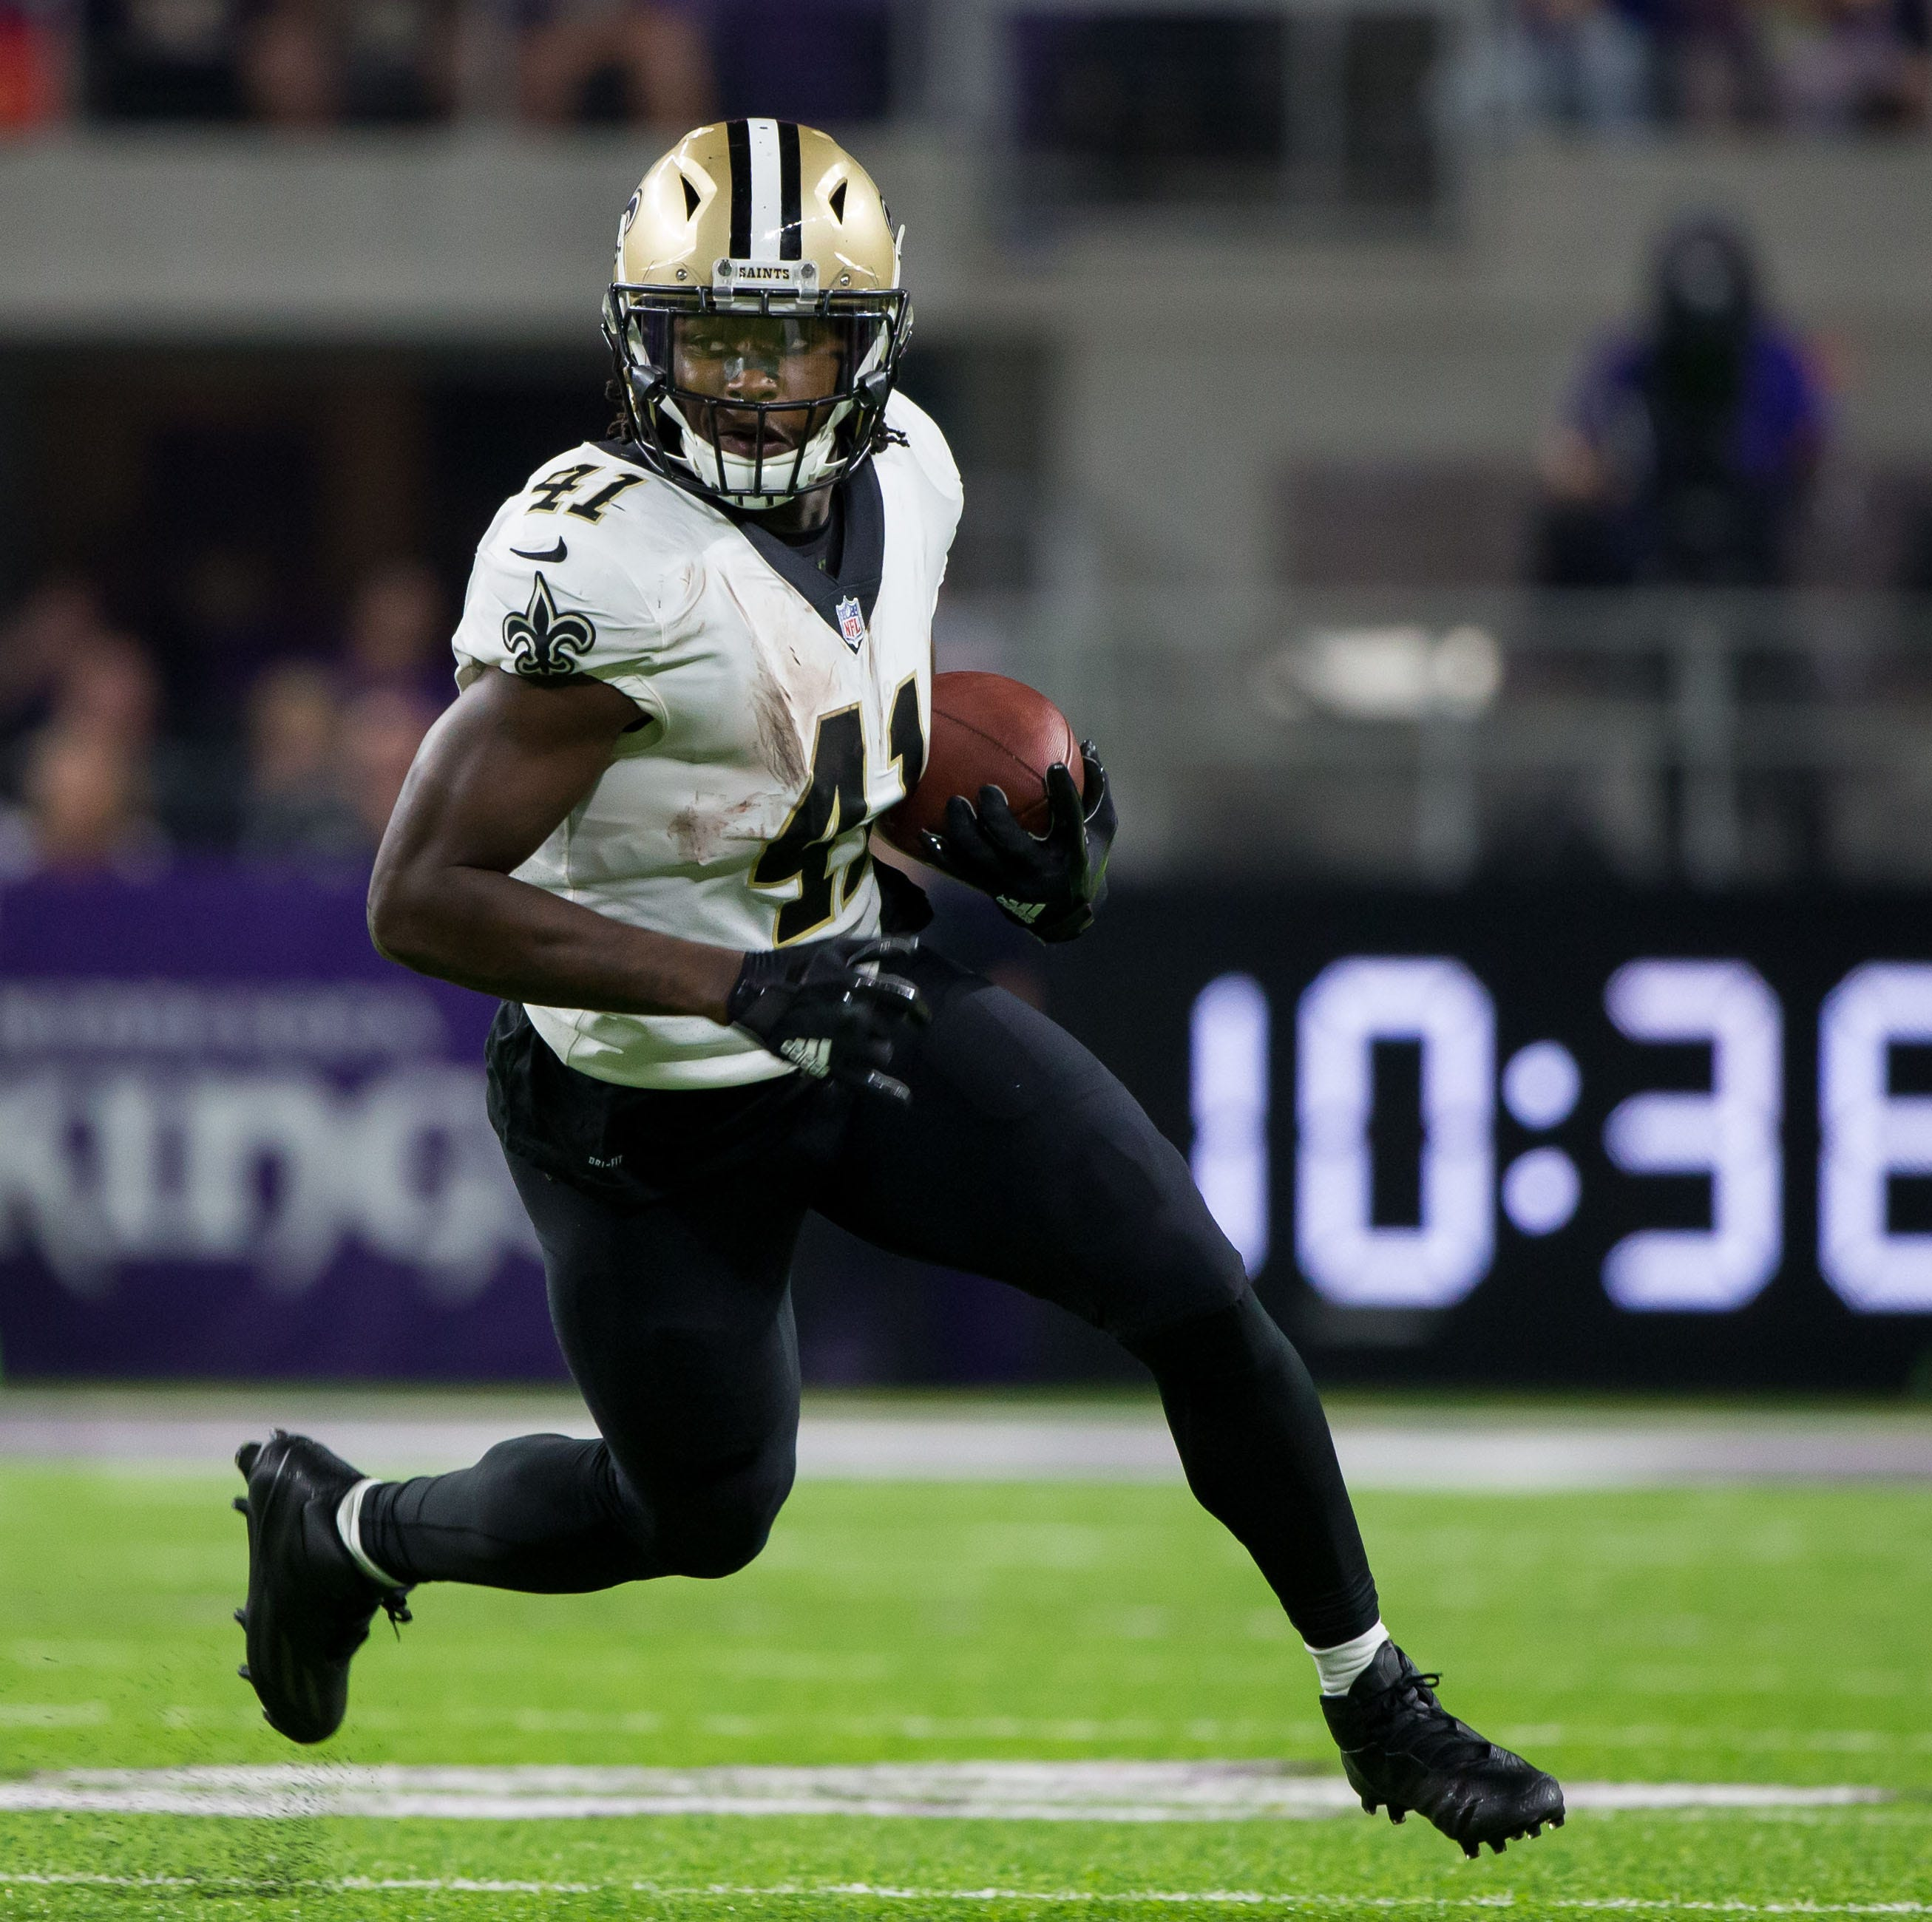 Saints hope to answer heartbreak of Vikings playoff loss with another Super Bowl season